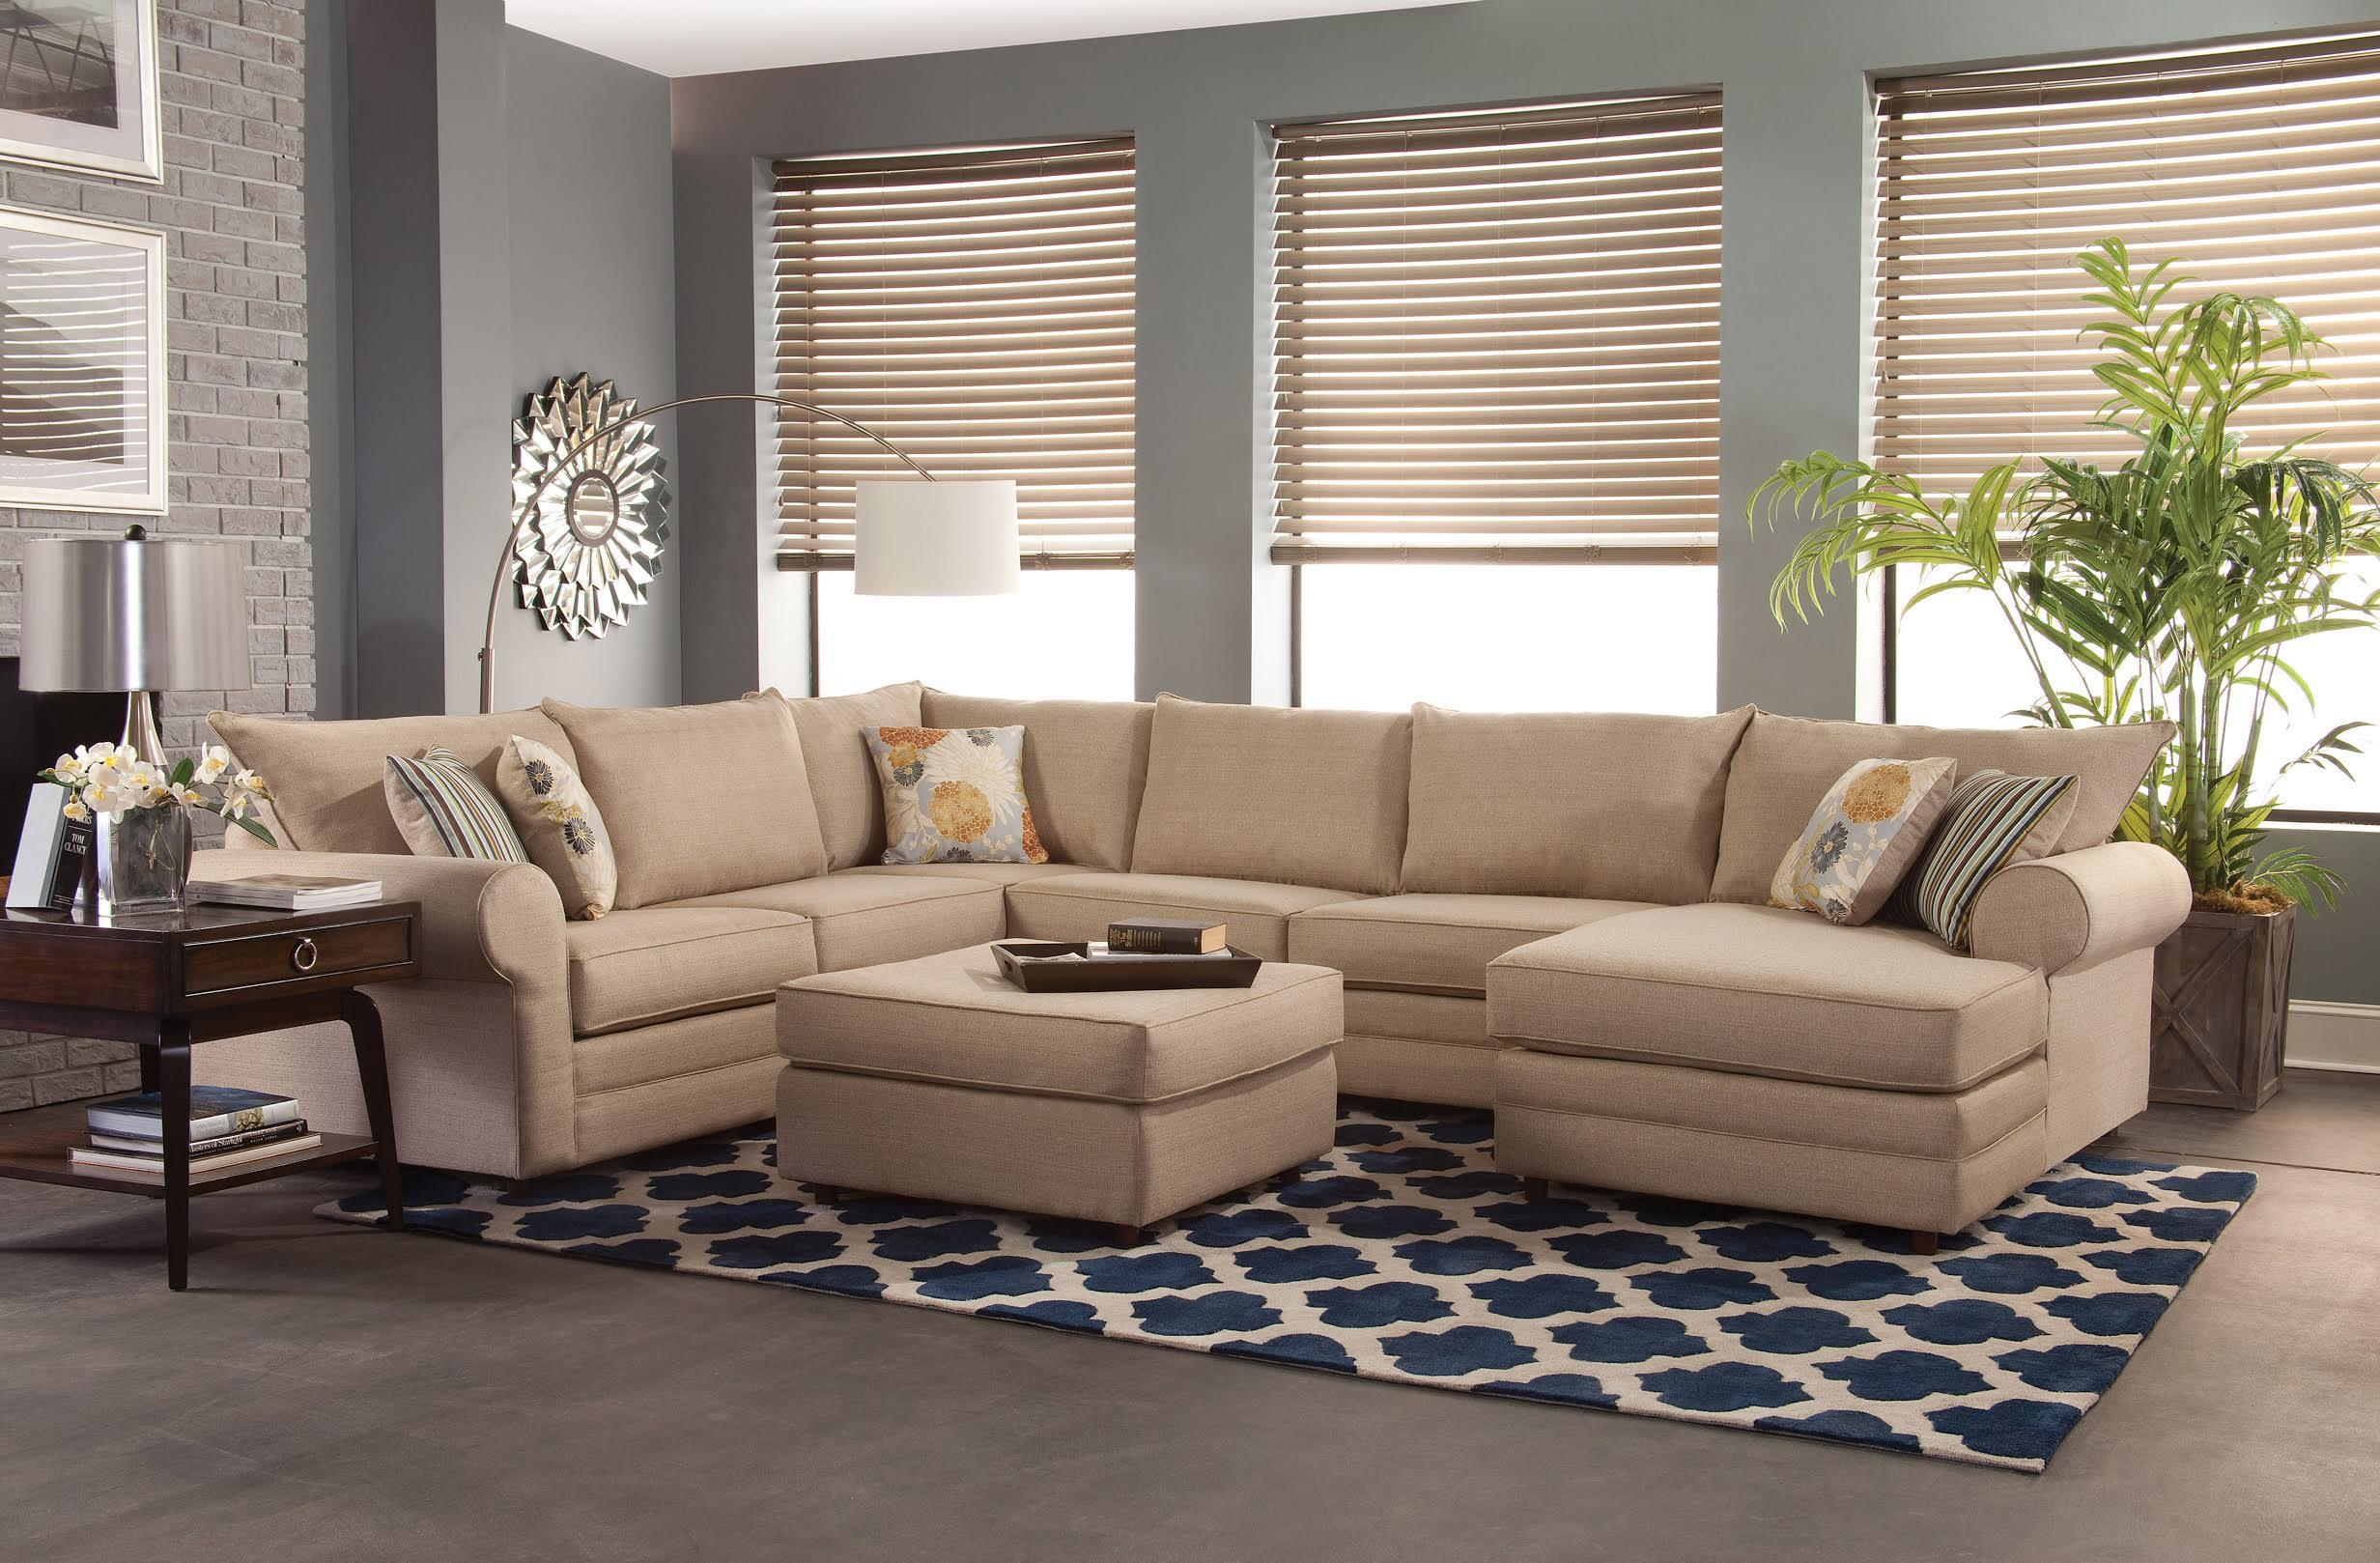 Cheap Sectional Sofa Monticello Casual Sectional Sofa With Chaise By Belfort Essentials At Belfort Furniture